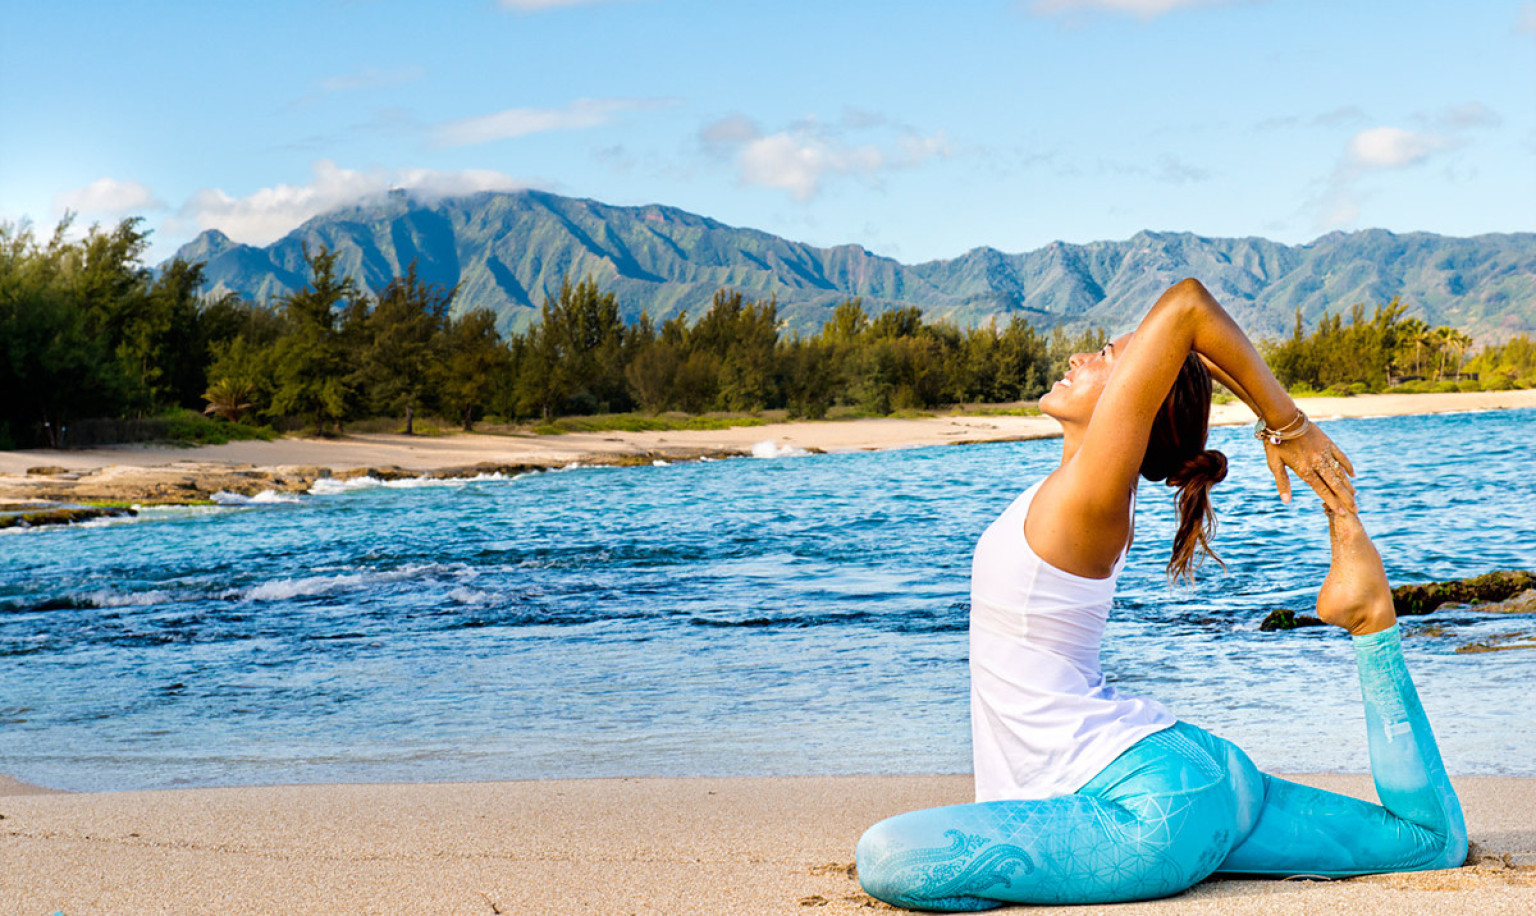 The 5 Yoga Poses You Should Do Every Morning